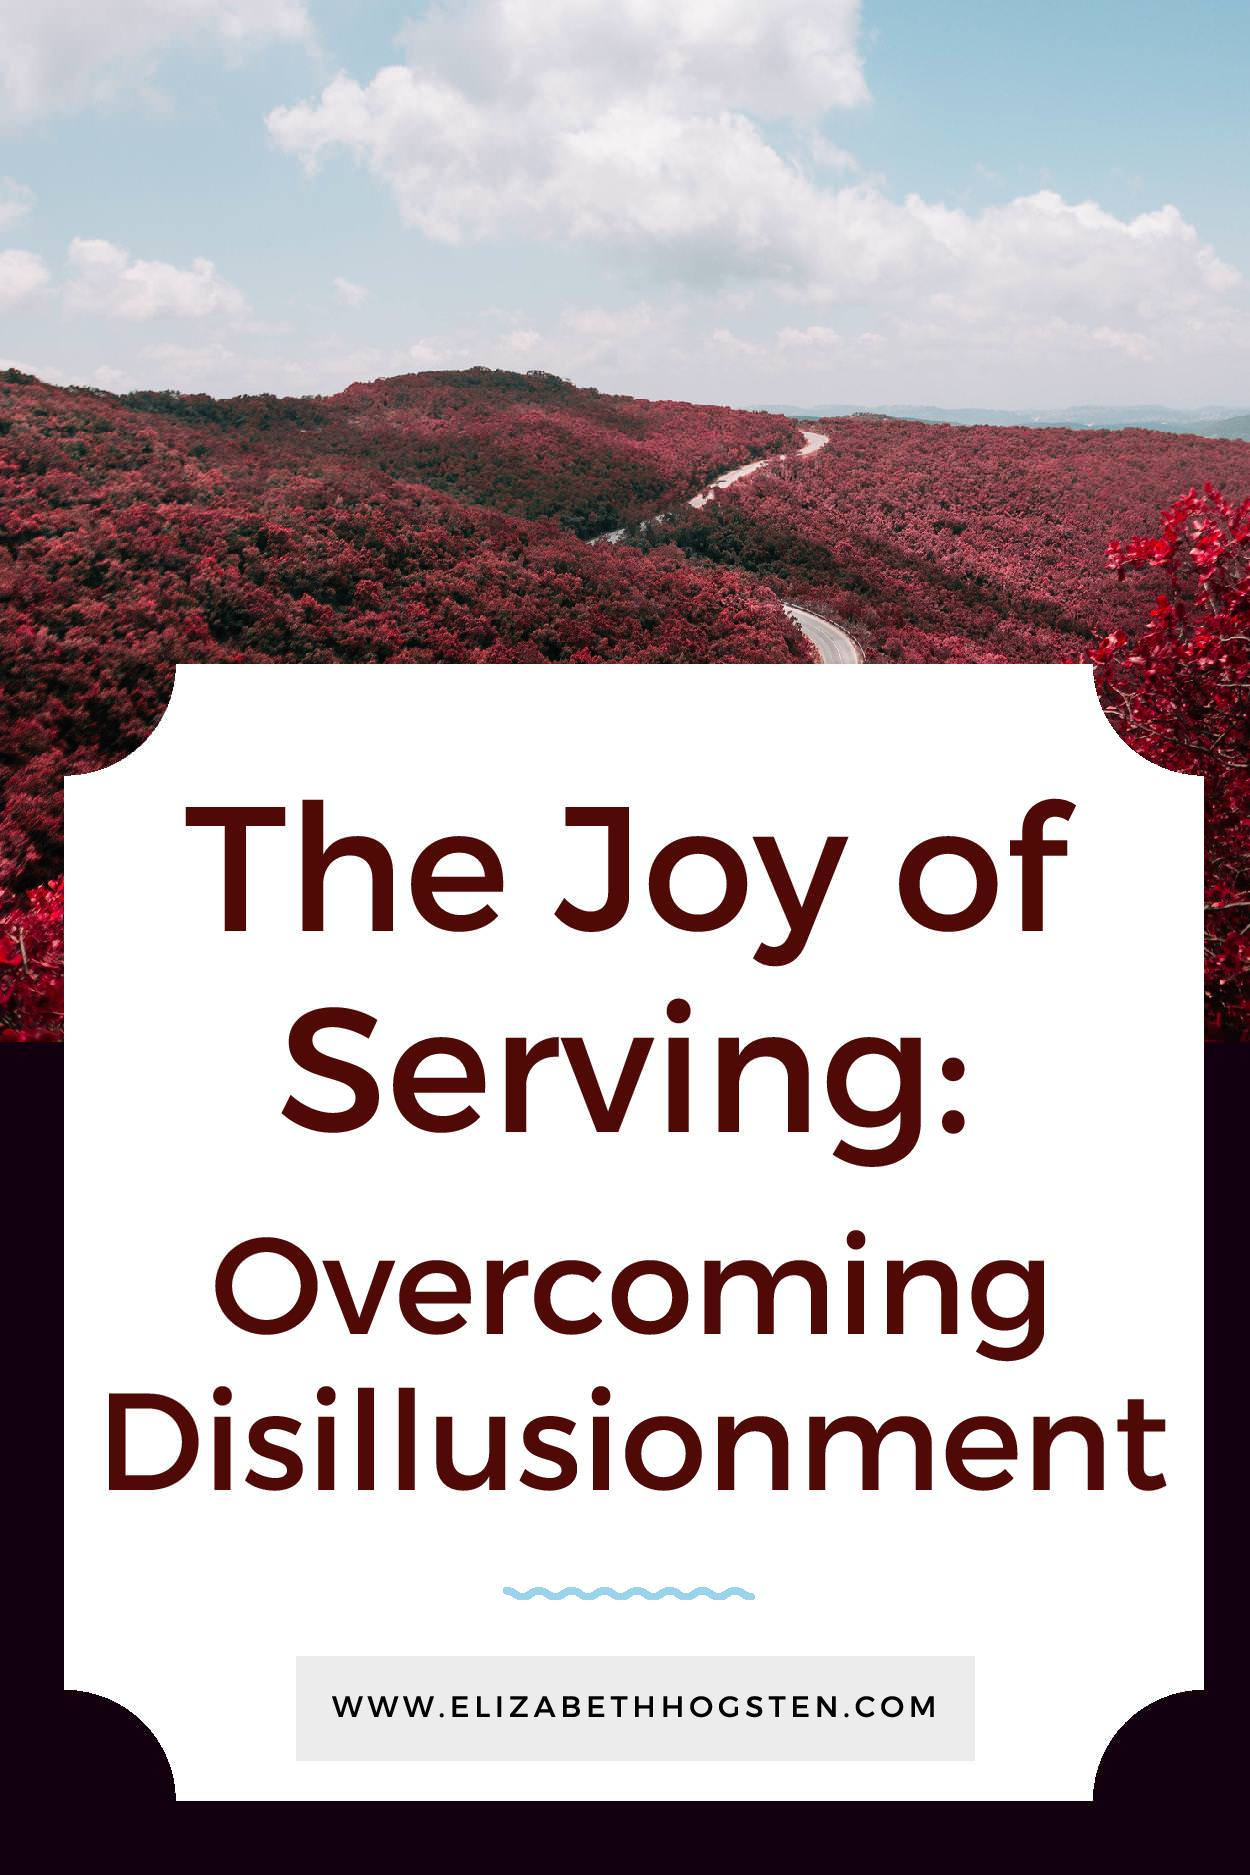 The Joy of Serving: Overcoming Disillusionment